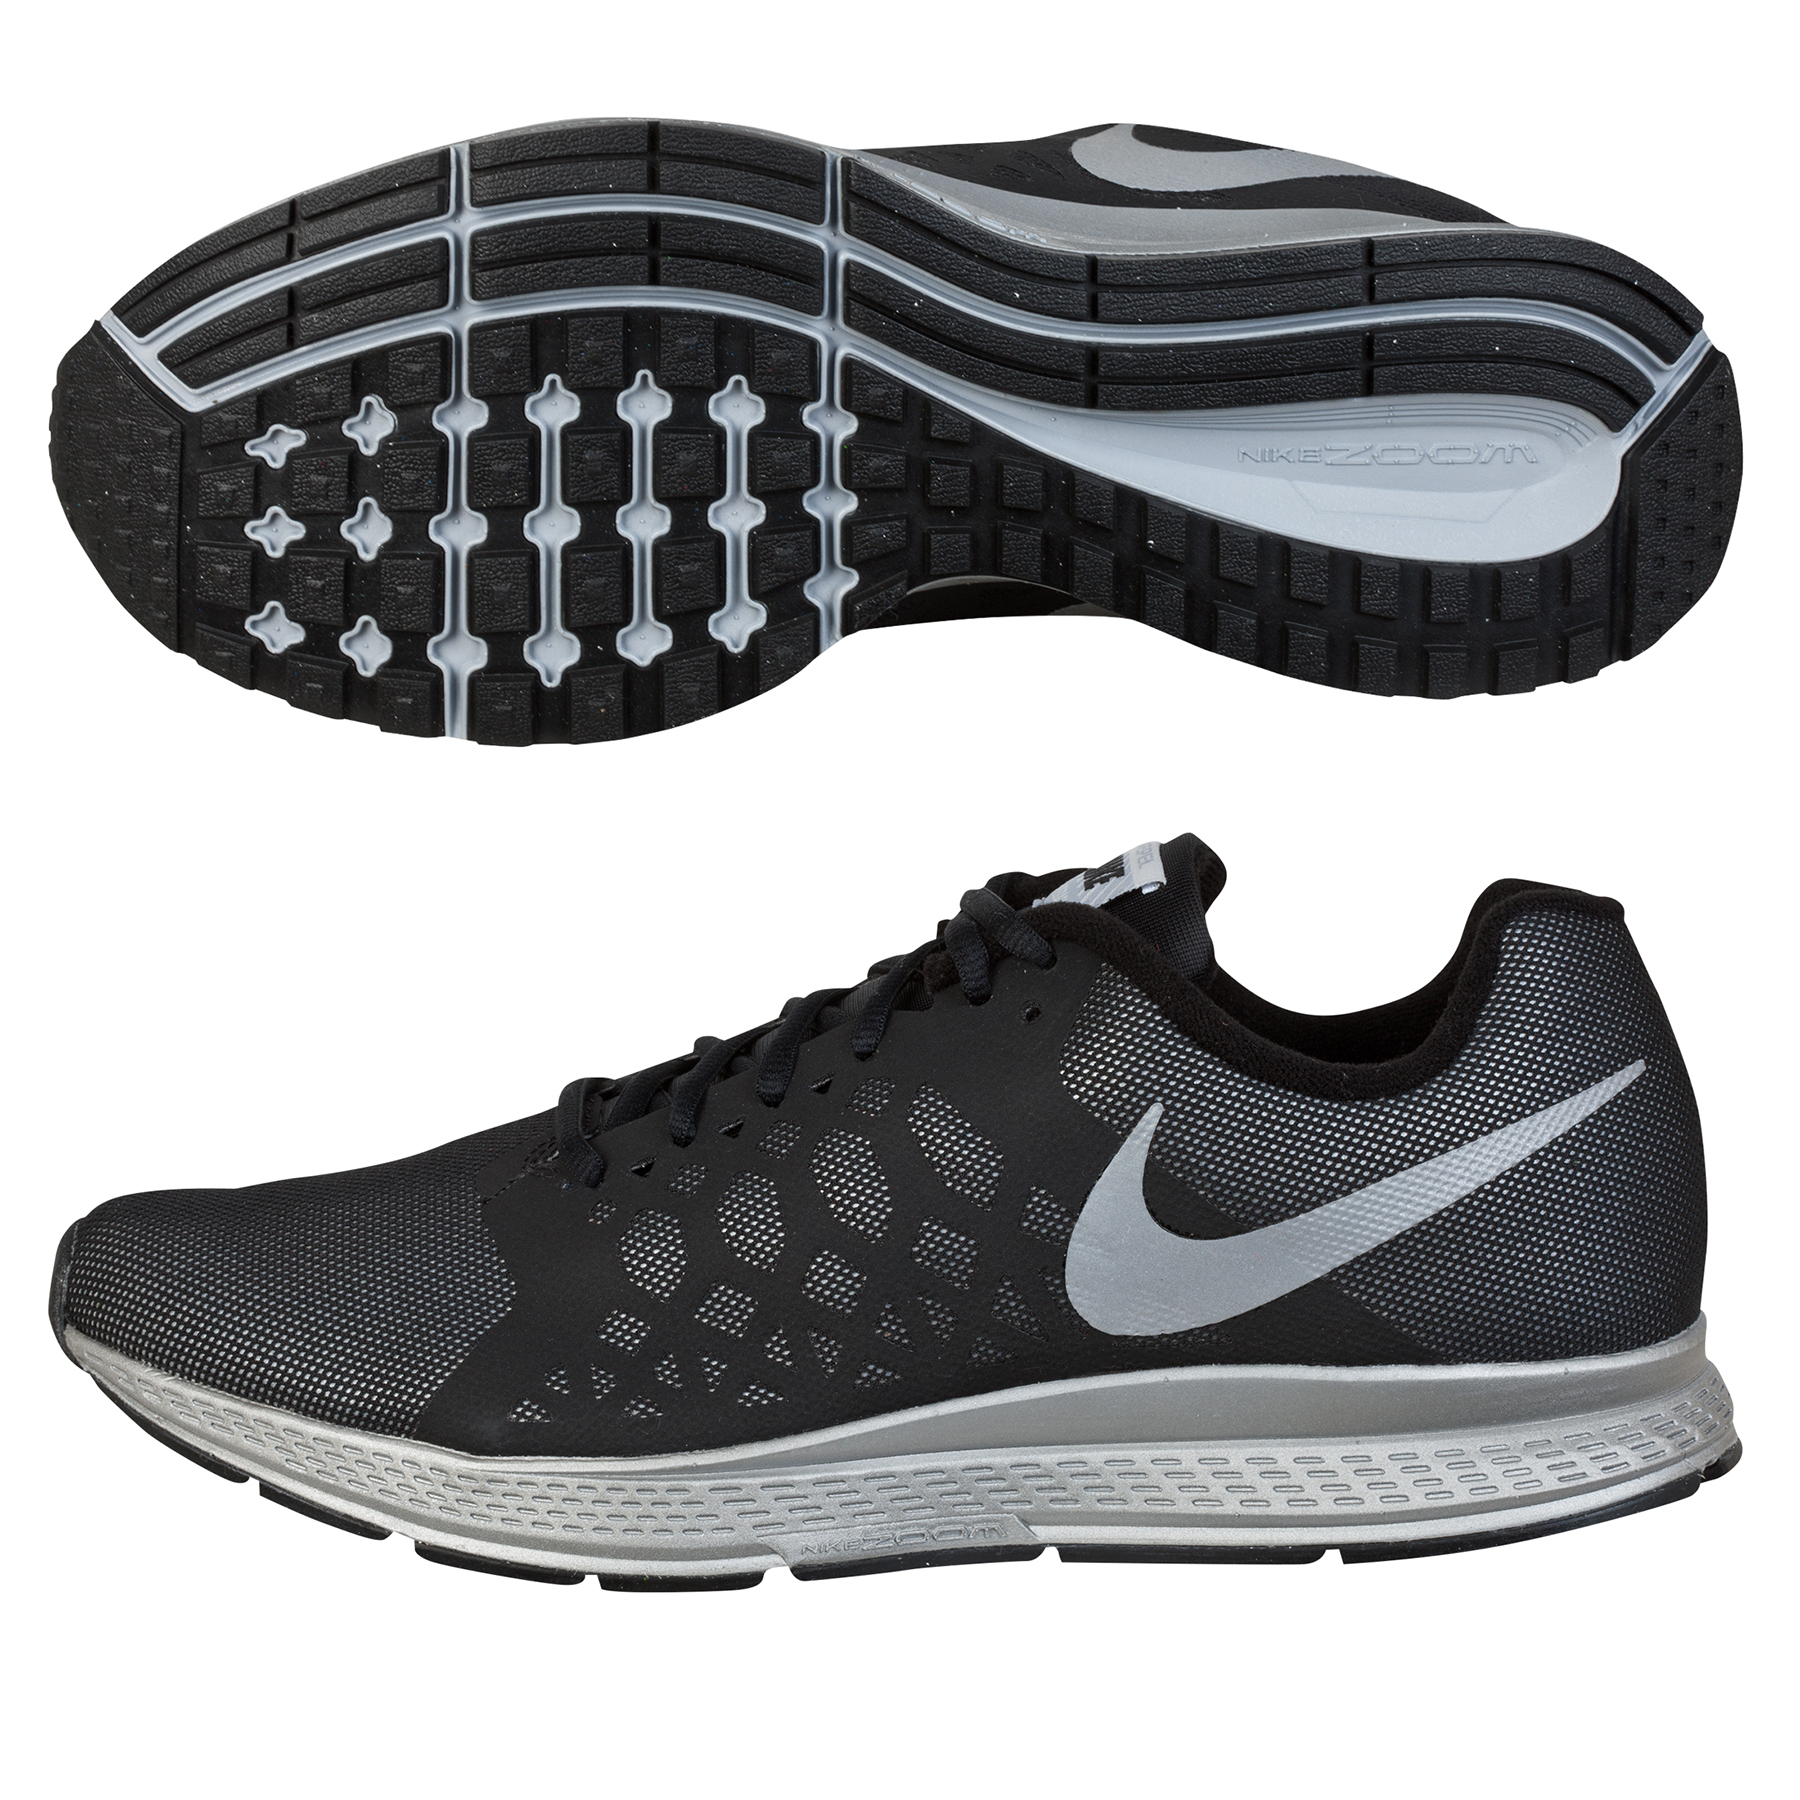 Nike Zoom Pegasus 31 Flash Trainers Black